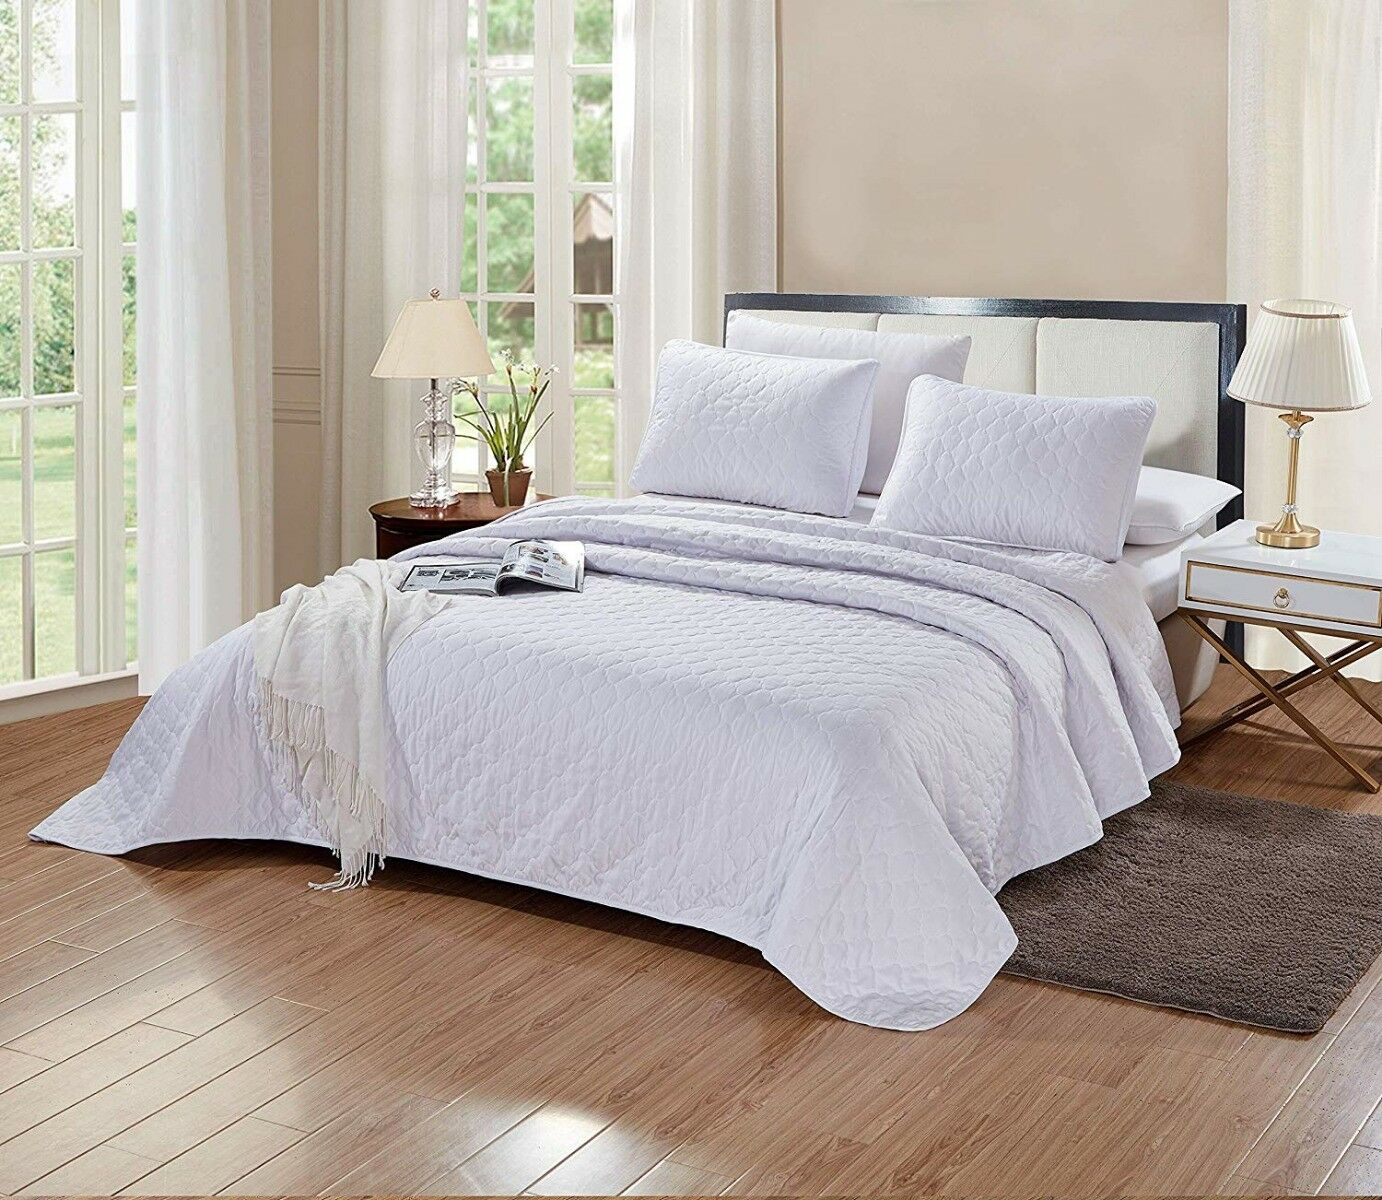 3 Pc KING Size Aria Quilt Set Solid White Microfiber Coverle